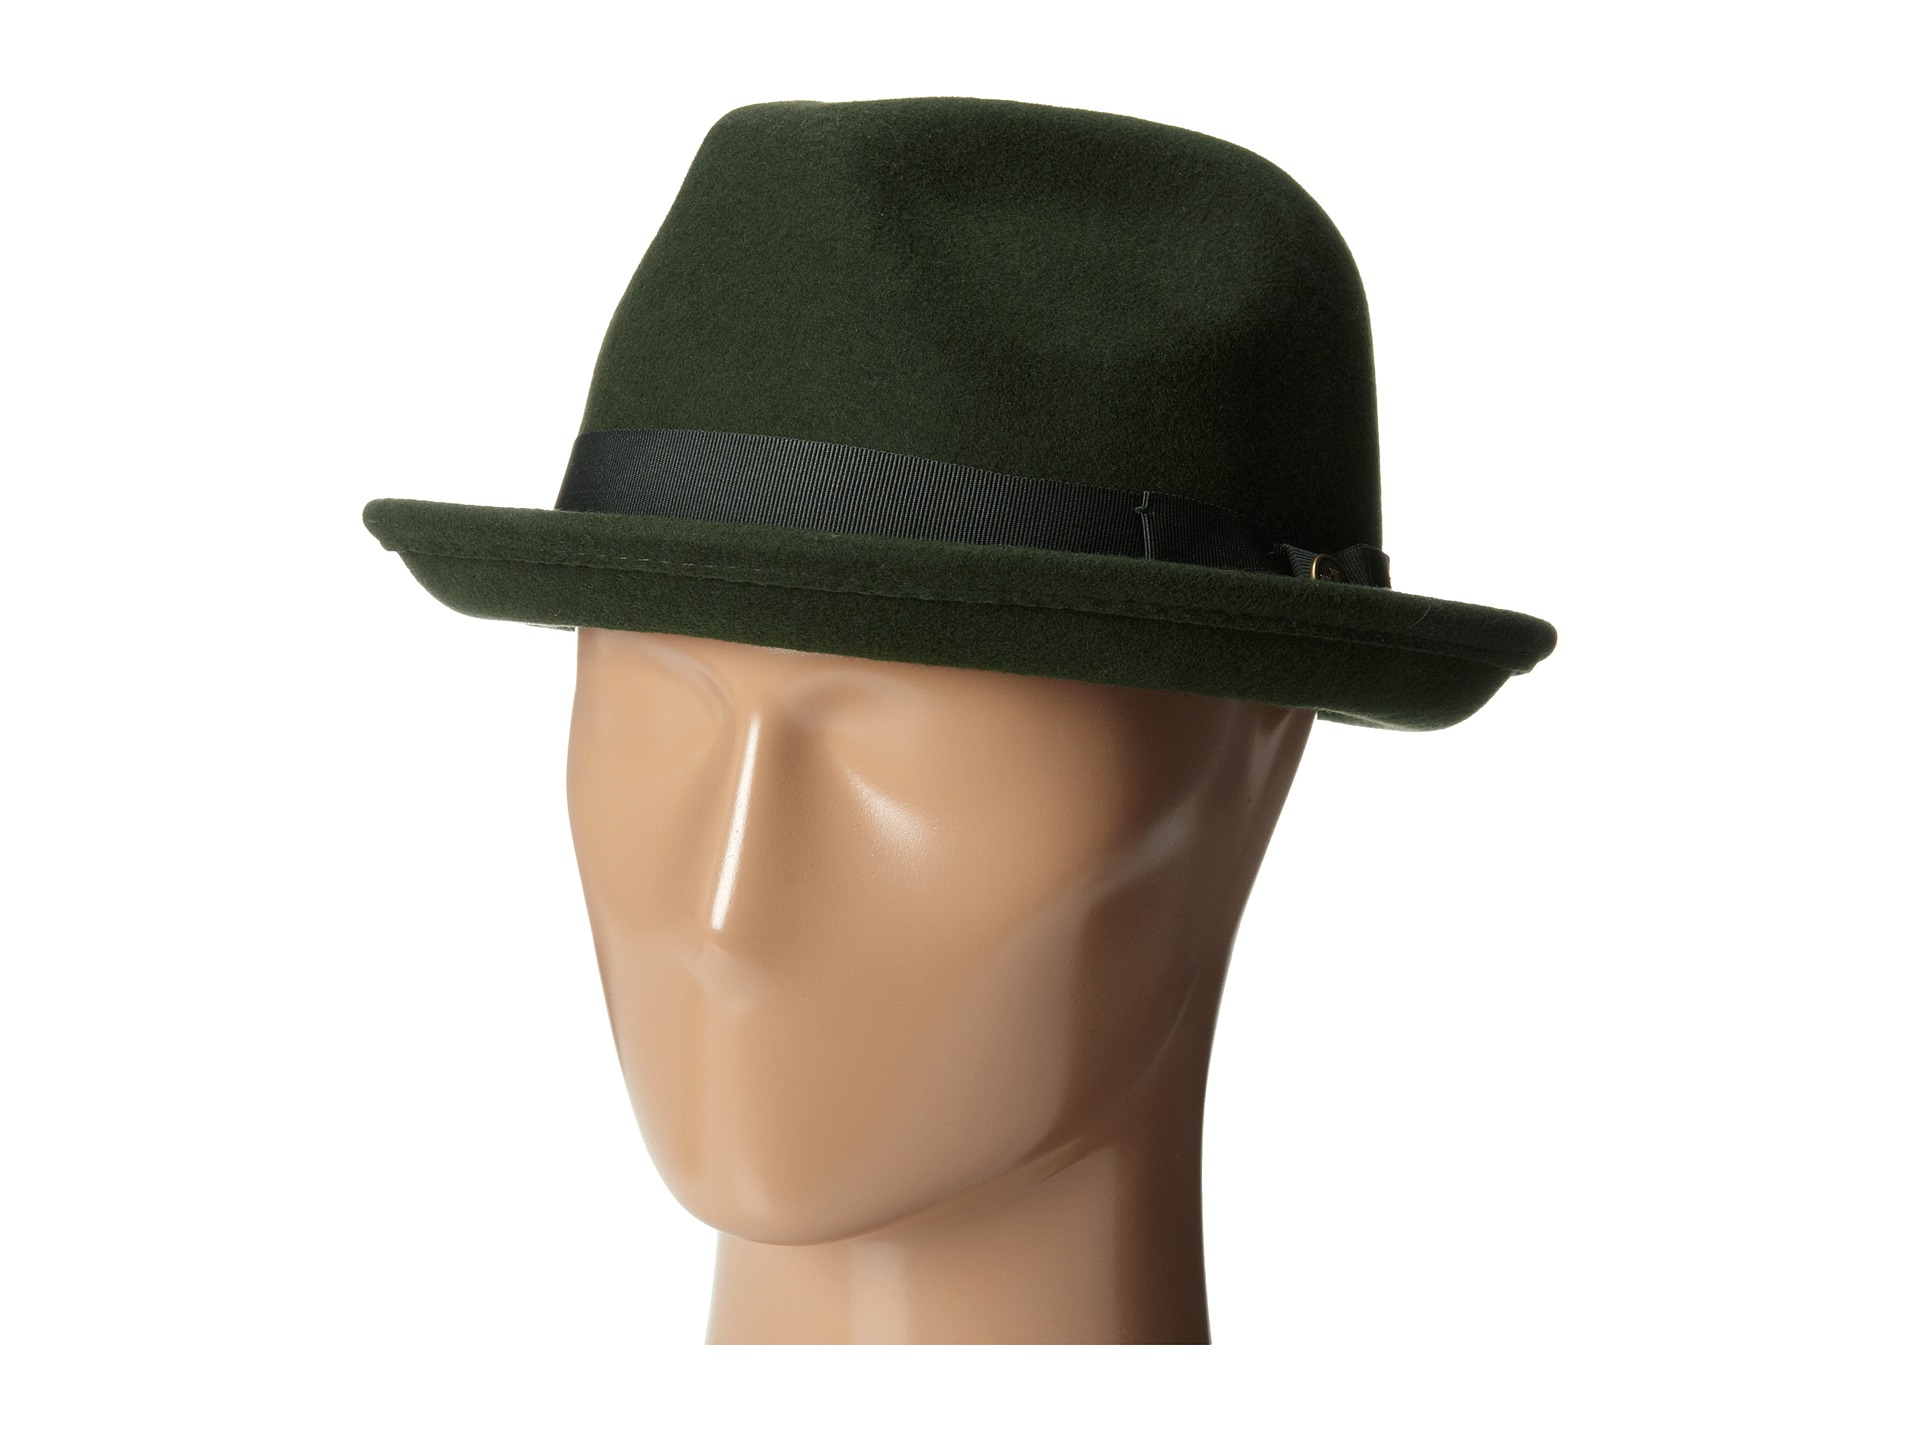 FREE Shipping on eligible orders. Some colors are Prime eligible. out of 5 stars 9. Product Features hat with mesh back Embroidered animal patch Exclusive Goorin Bros Goorin Bros. Men's Private Cadet. by Goorin Bros. $ - $ $ 18 $ 30 00 Prime. FREE Shipping on eligible orders.